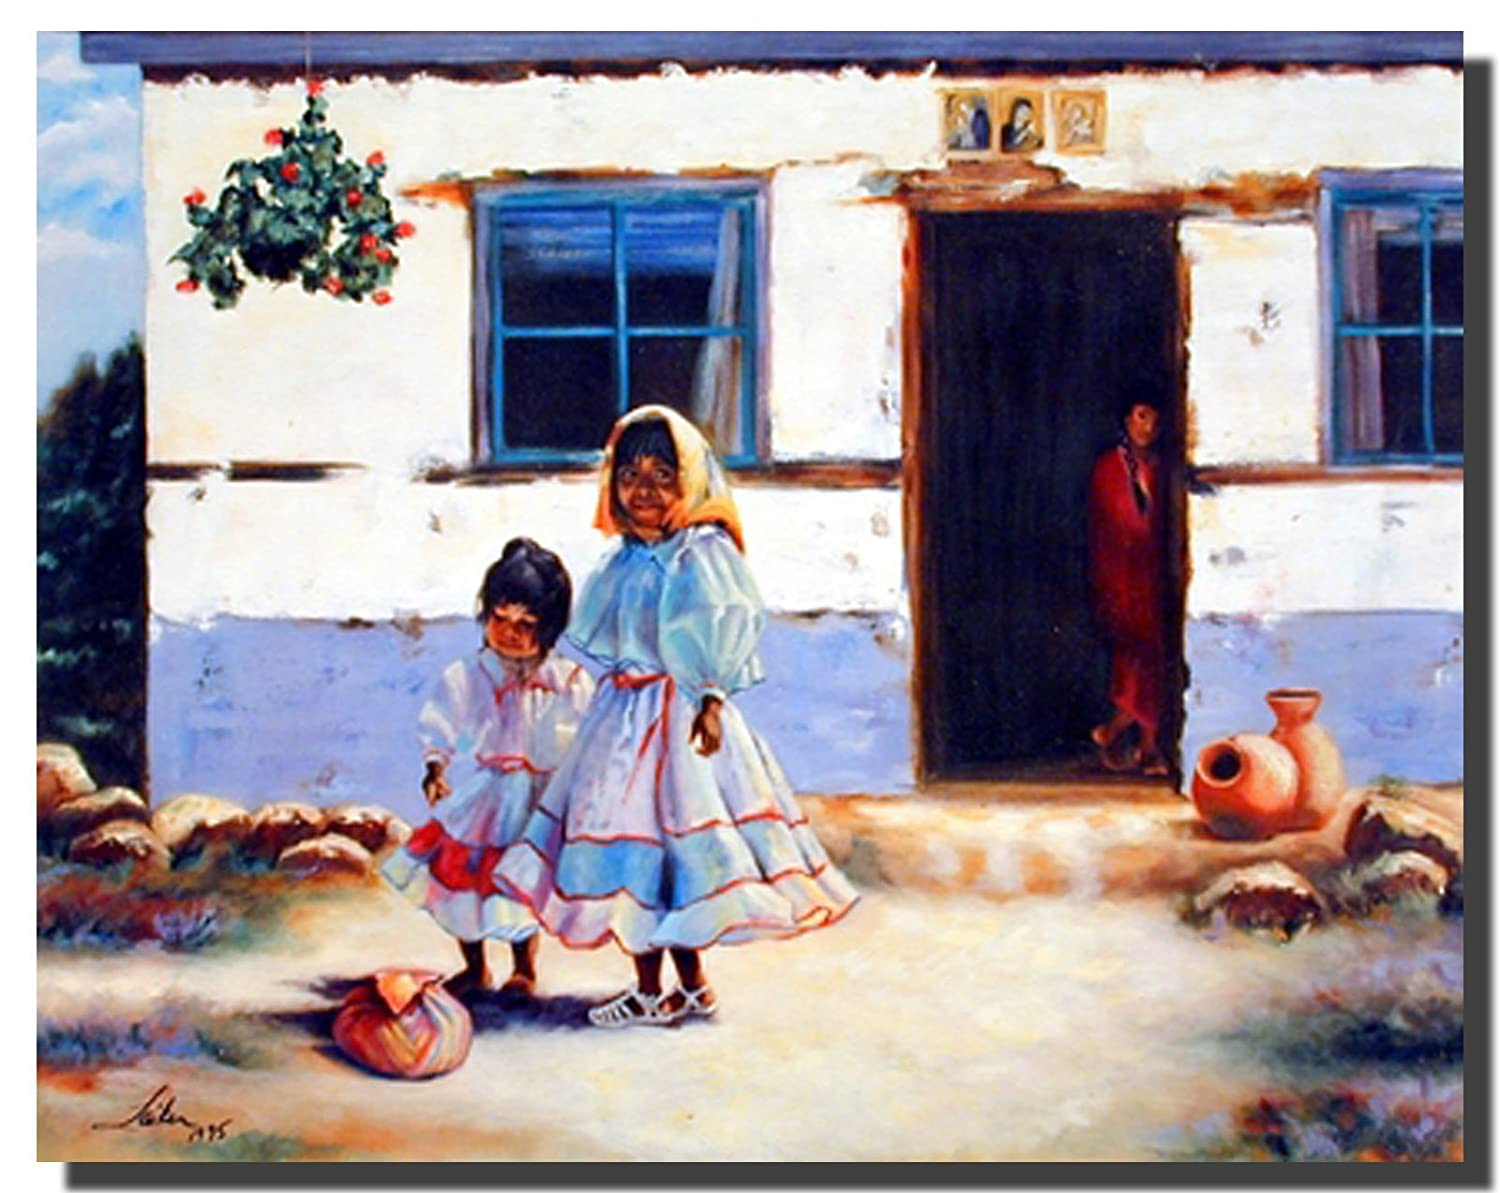 Wall Decor Old Mexican Lady with Children Art Print Poster (16x20)